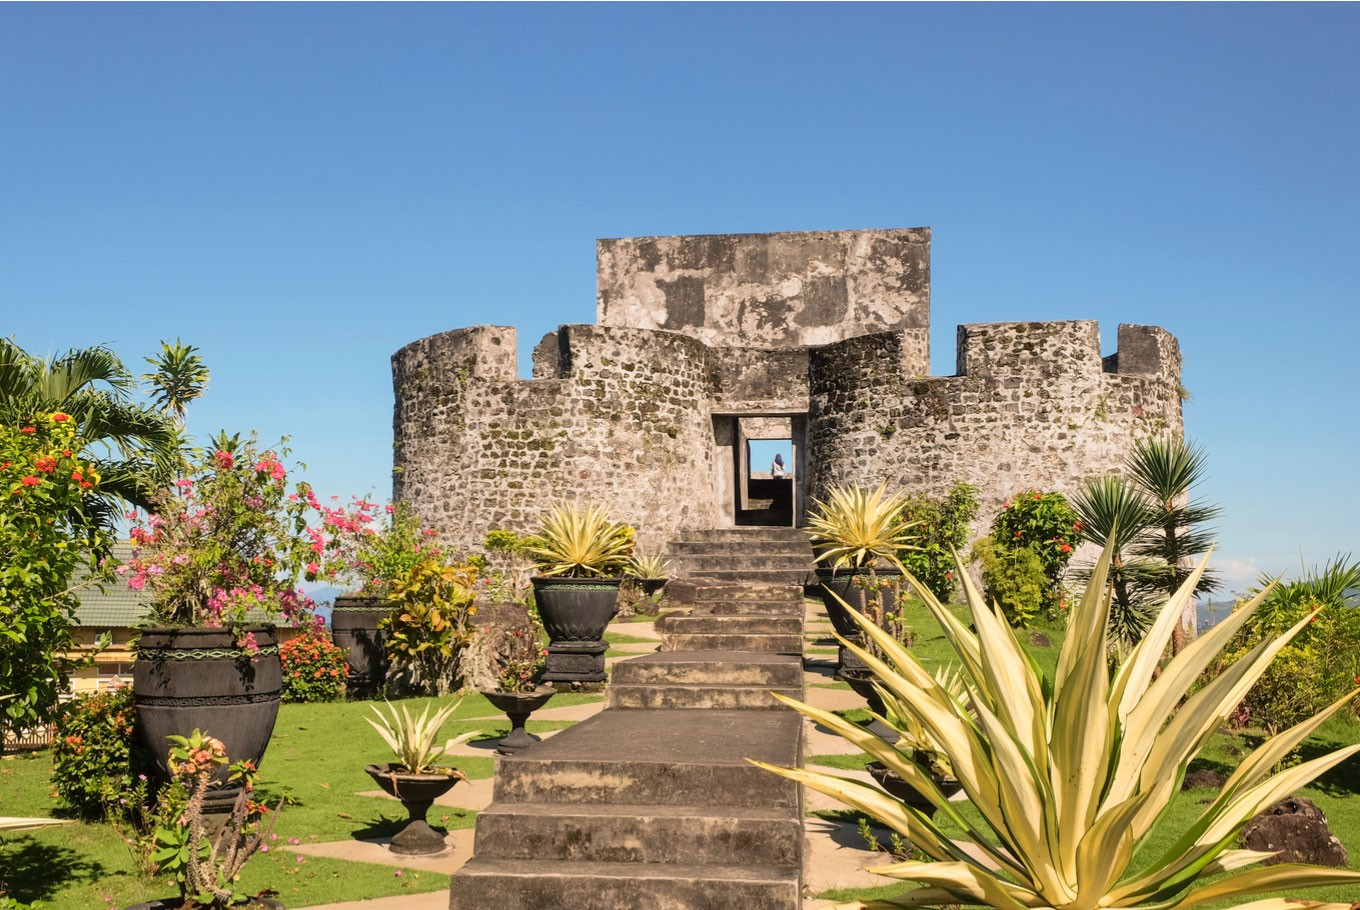 Four must-see historical spots in Ternate